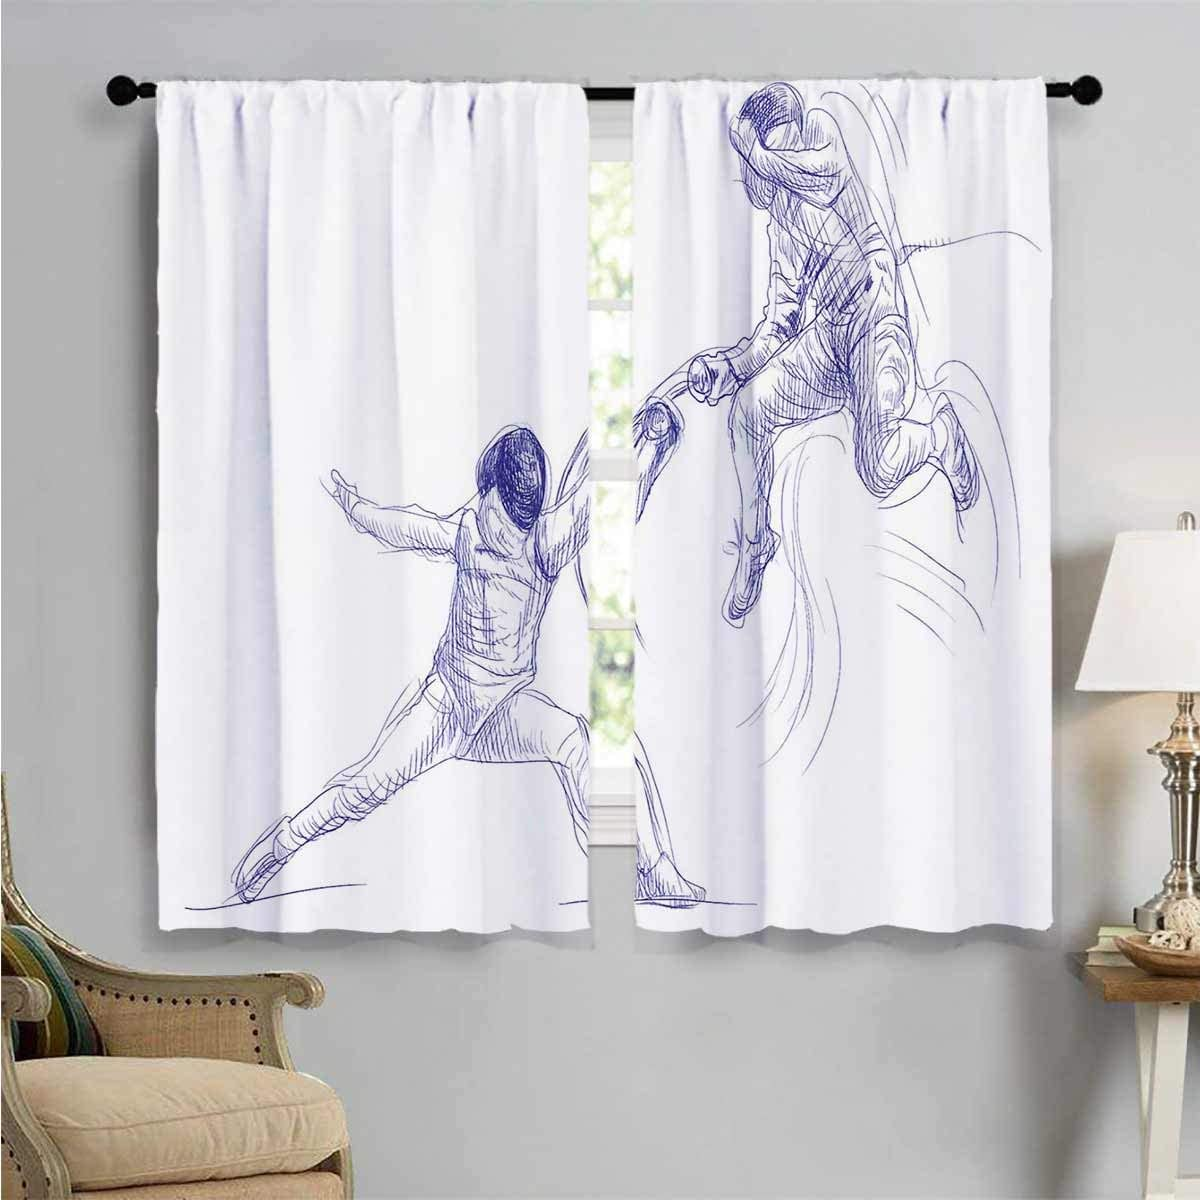 Online limited product Bedroom Curtains Fencing Super sale Duel Living W84 Sketchy Room